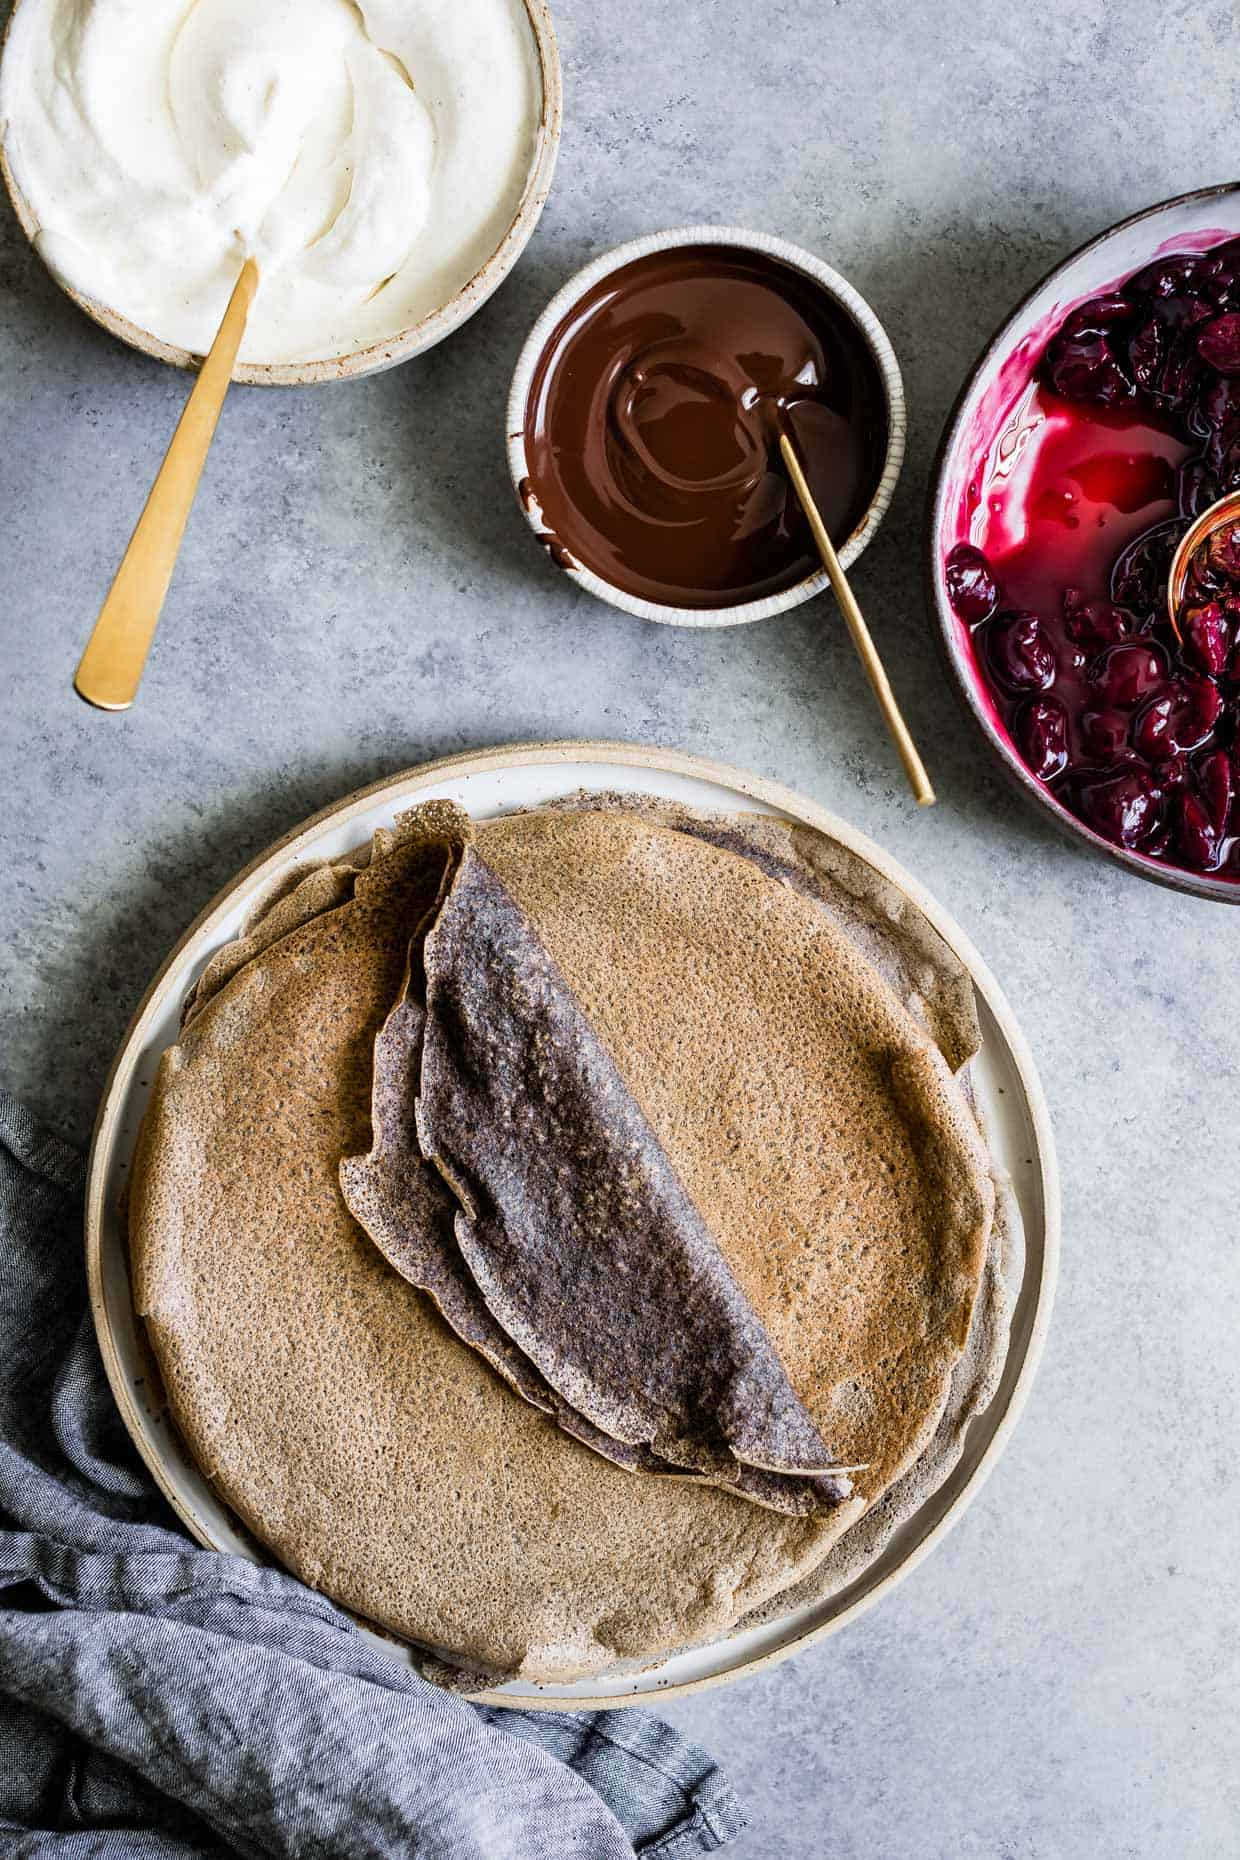 Buckwheat Crepes with Roasted Cherries, Whipped Cream, and Chocolate